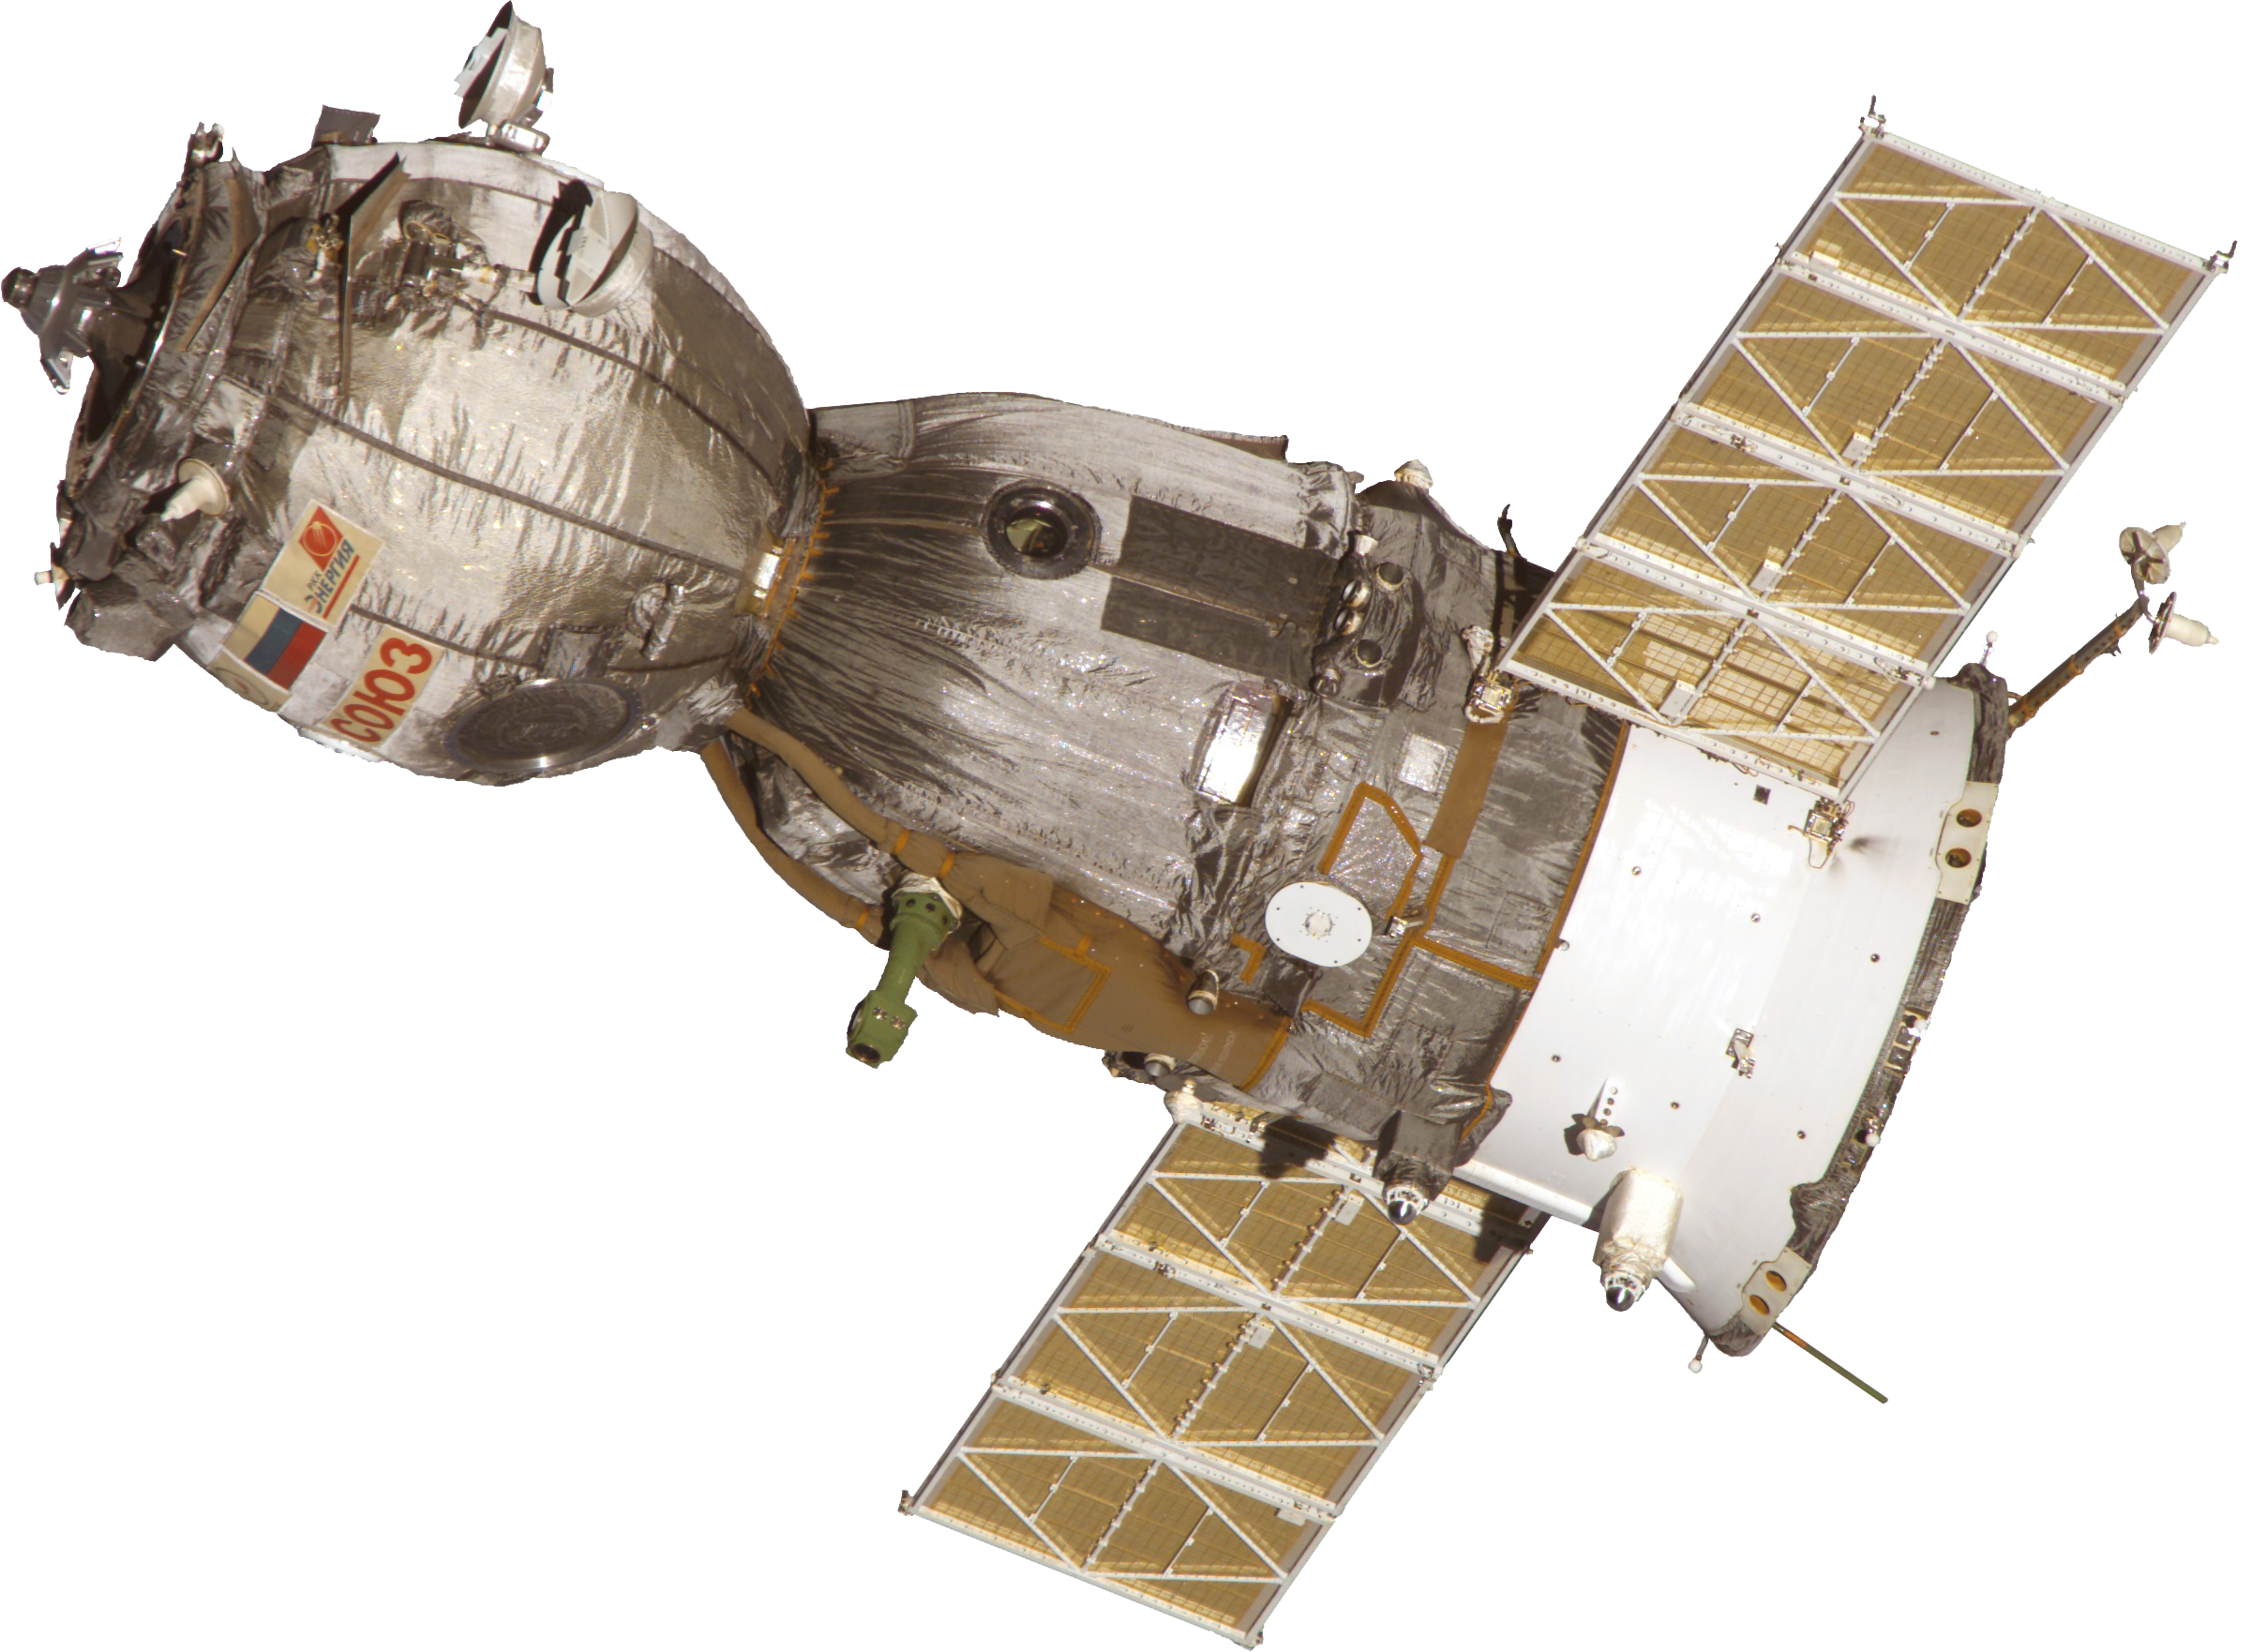 Spacecraft Png image #40887